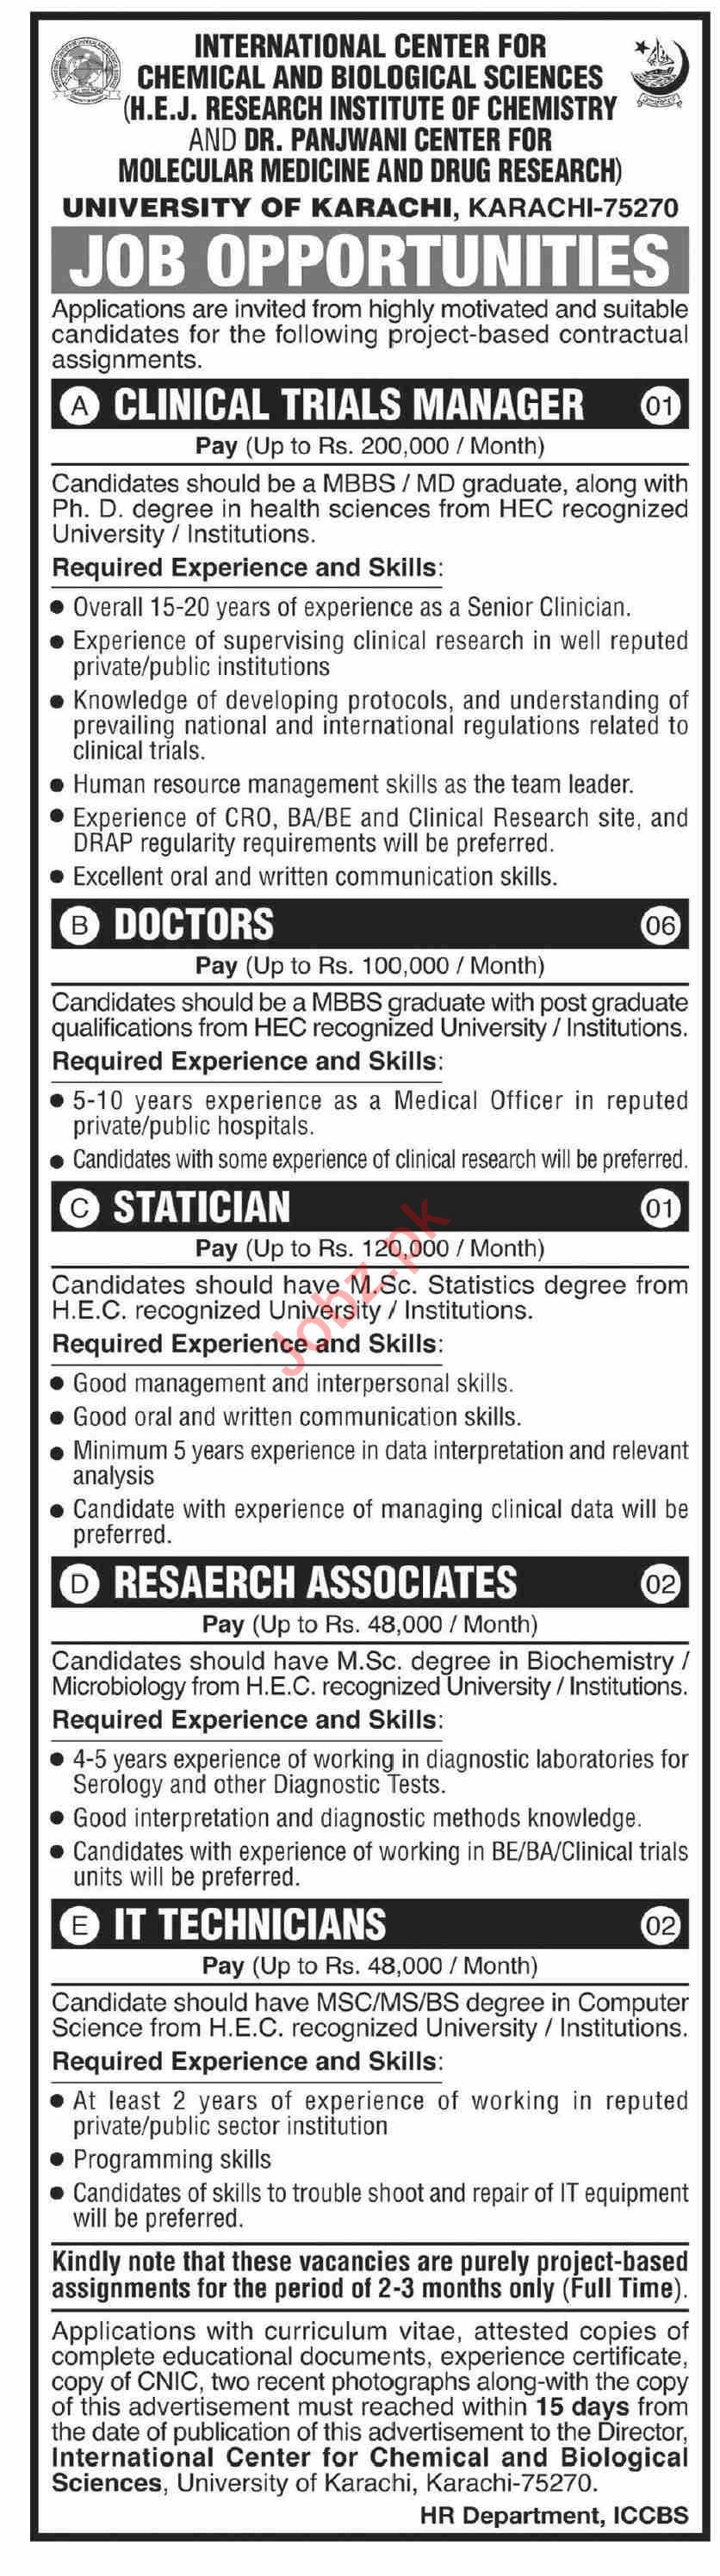 HEJ Research Institute of Chemistry ICCS Karachi Jobs 2020